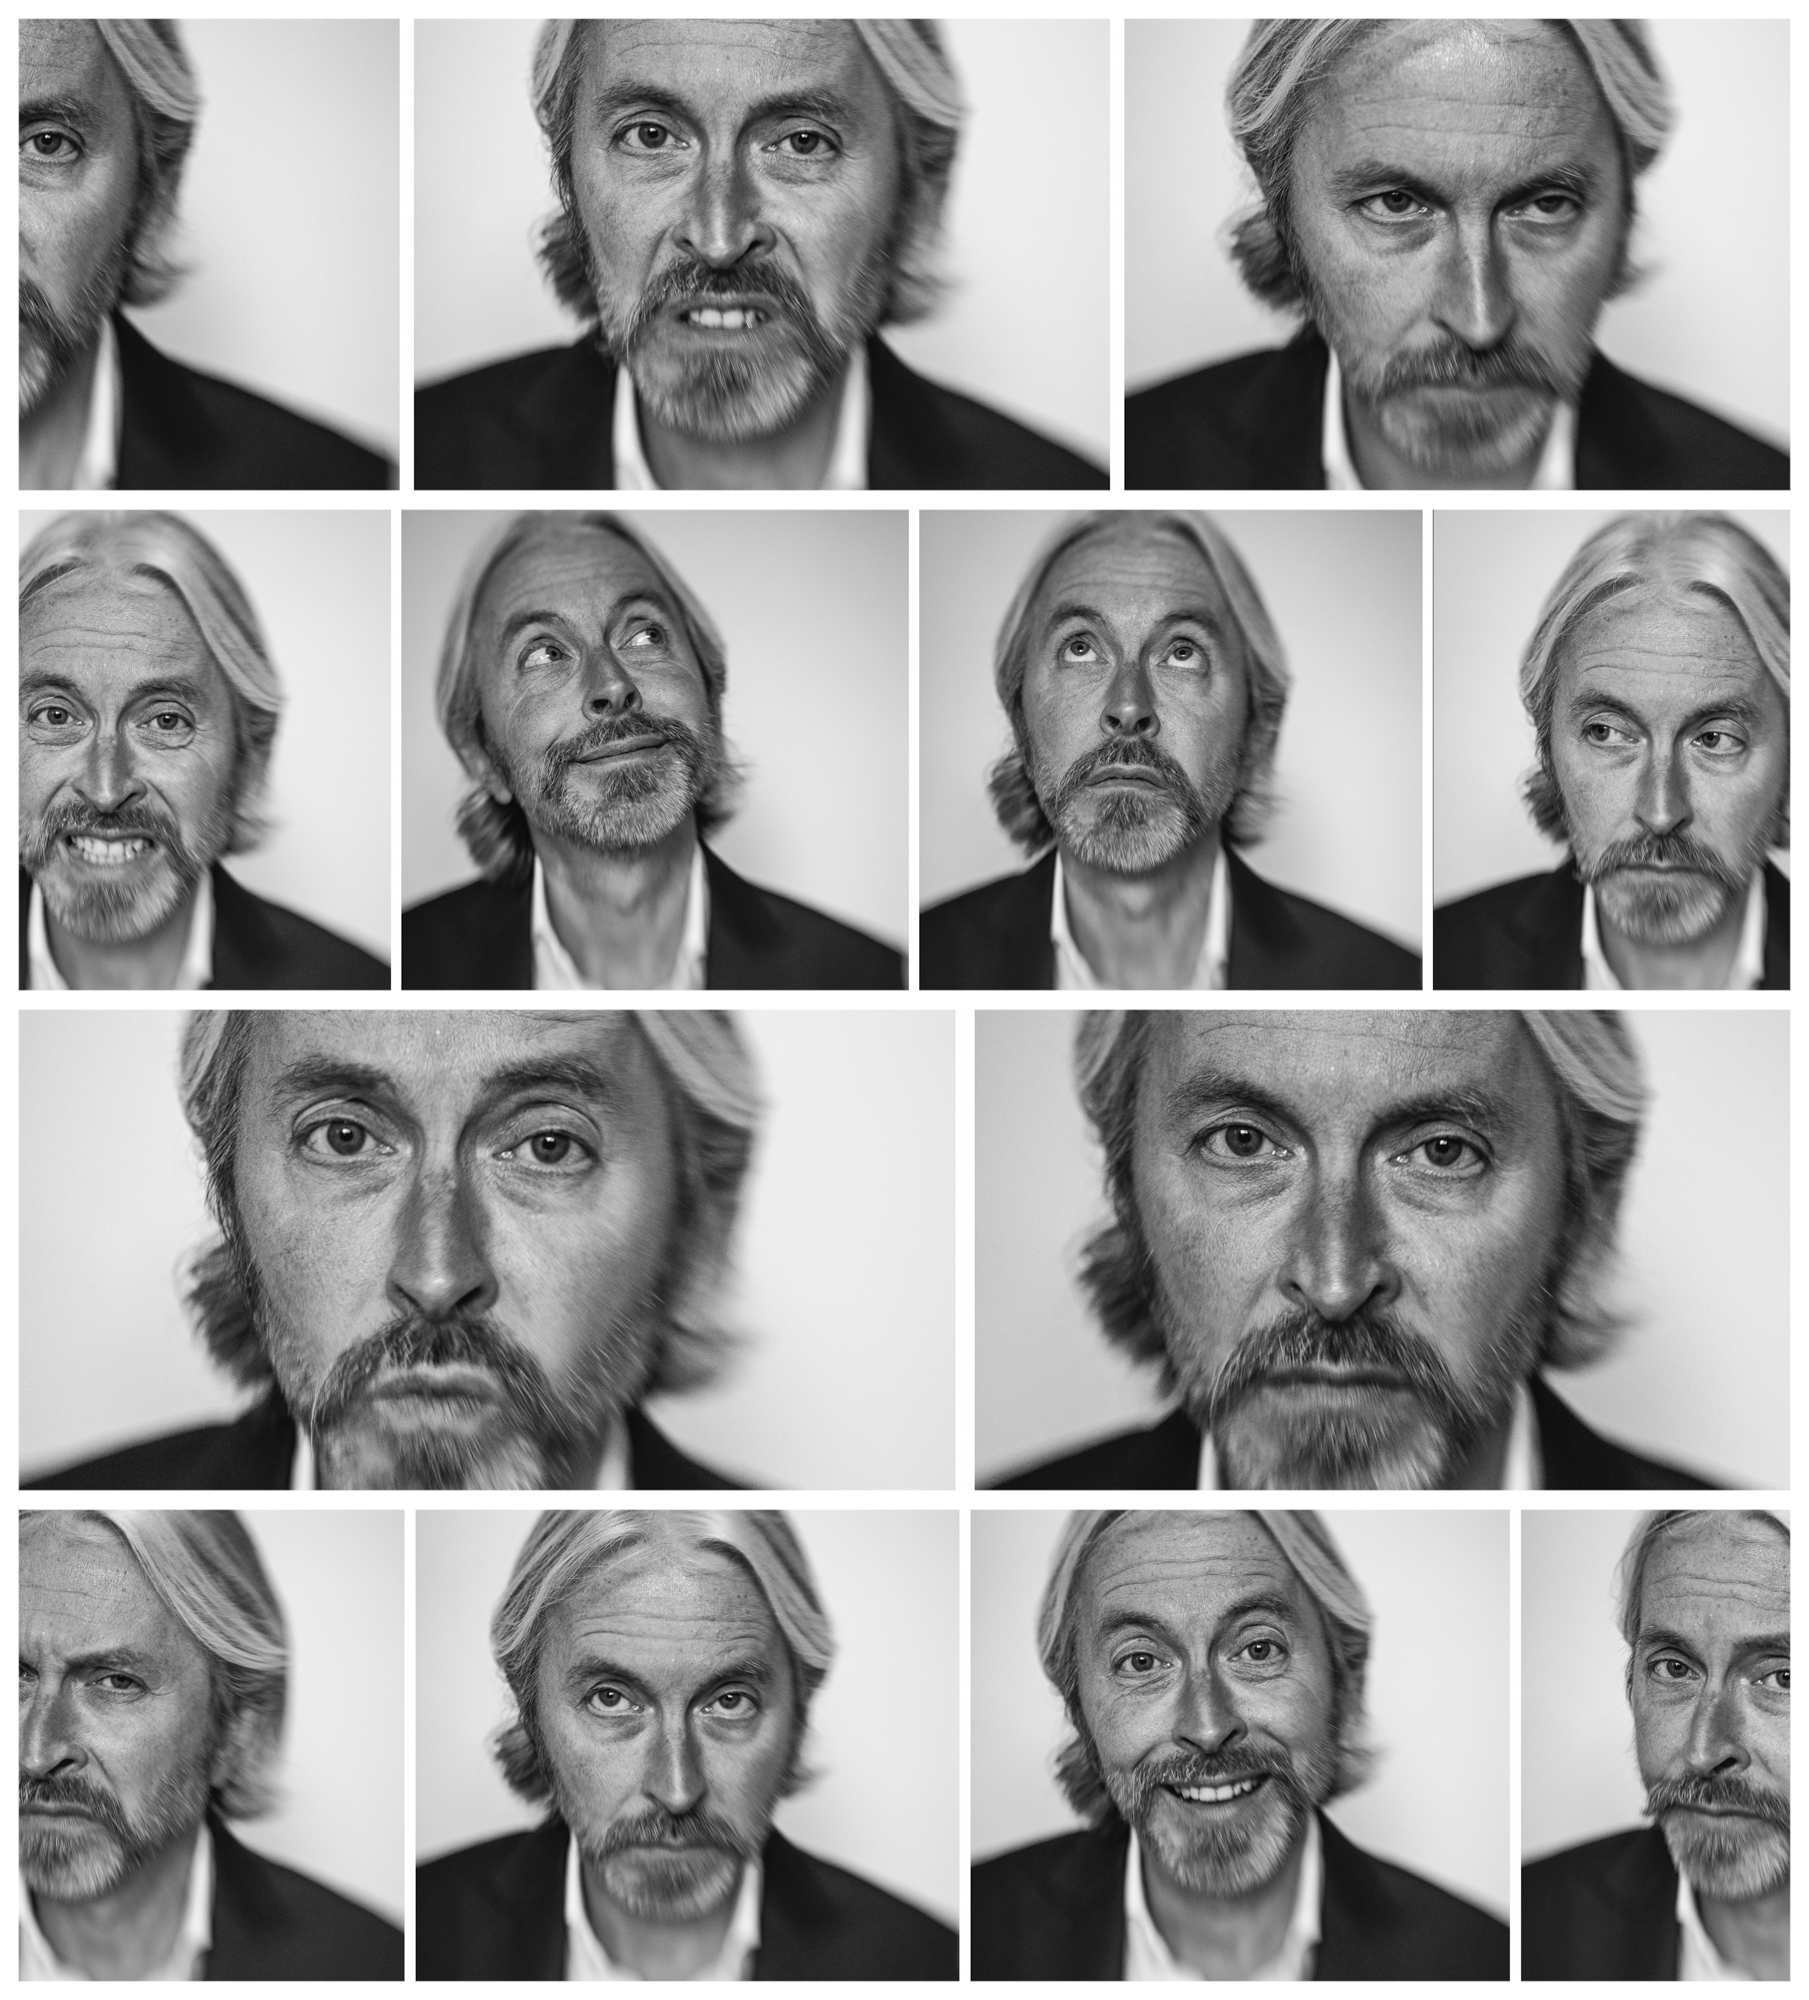 Roger - expressions